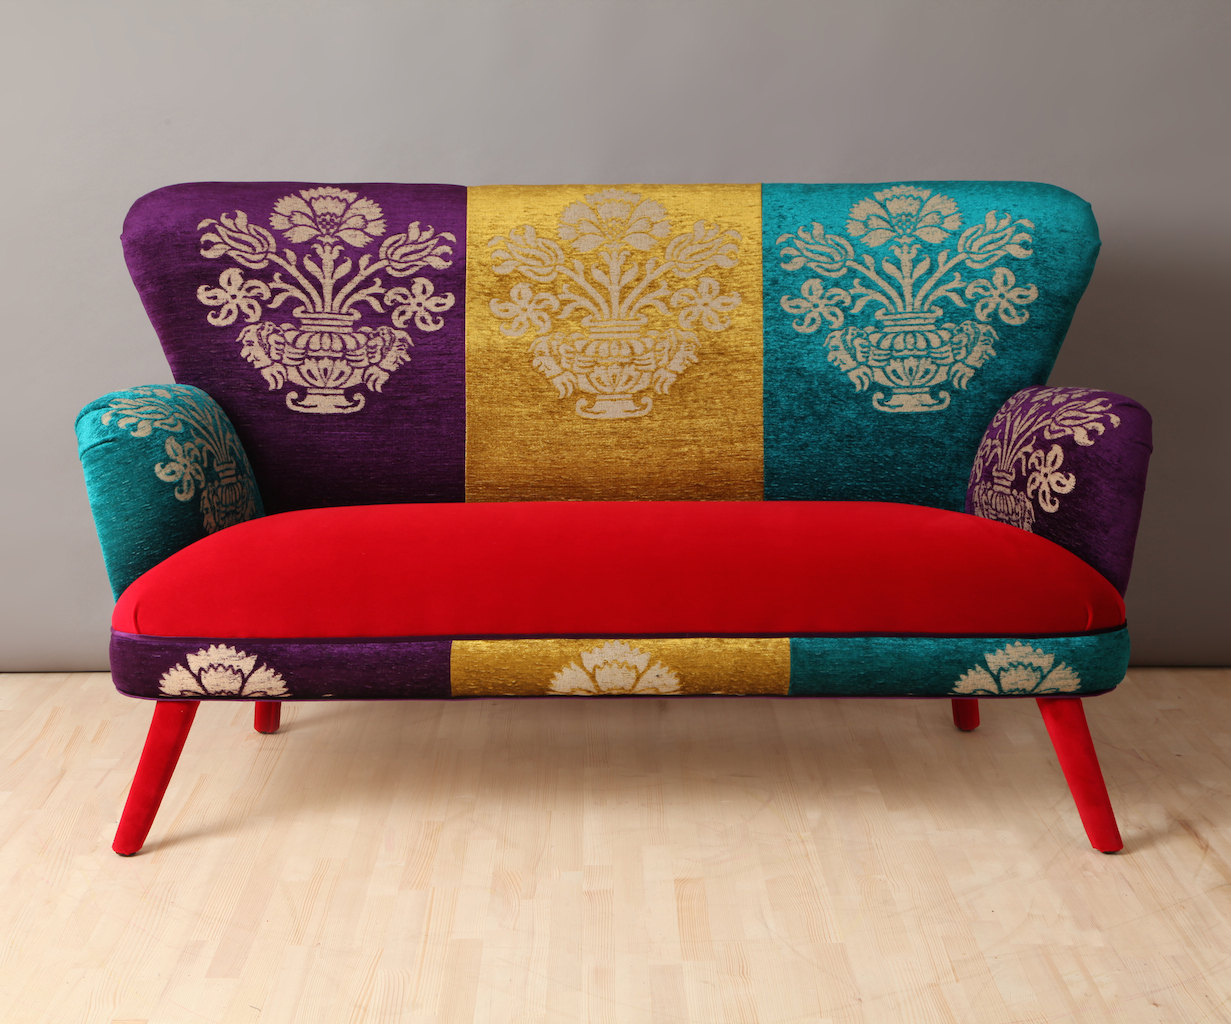 homemade modern ep 70 outdoor sofa bed boards support colorful two seater